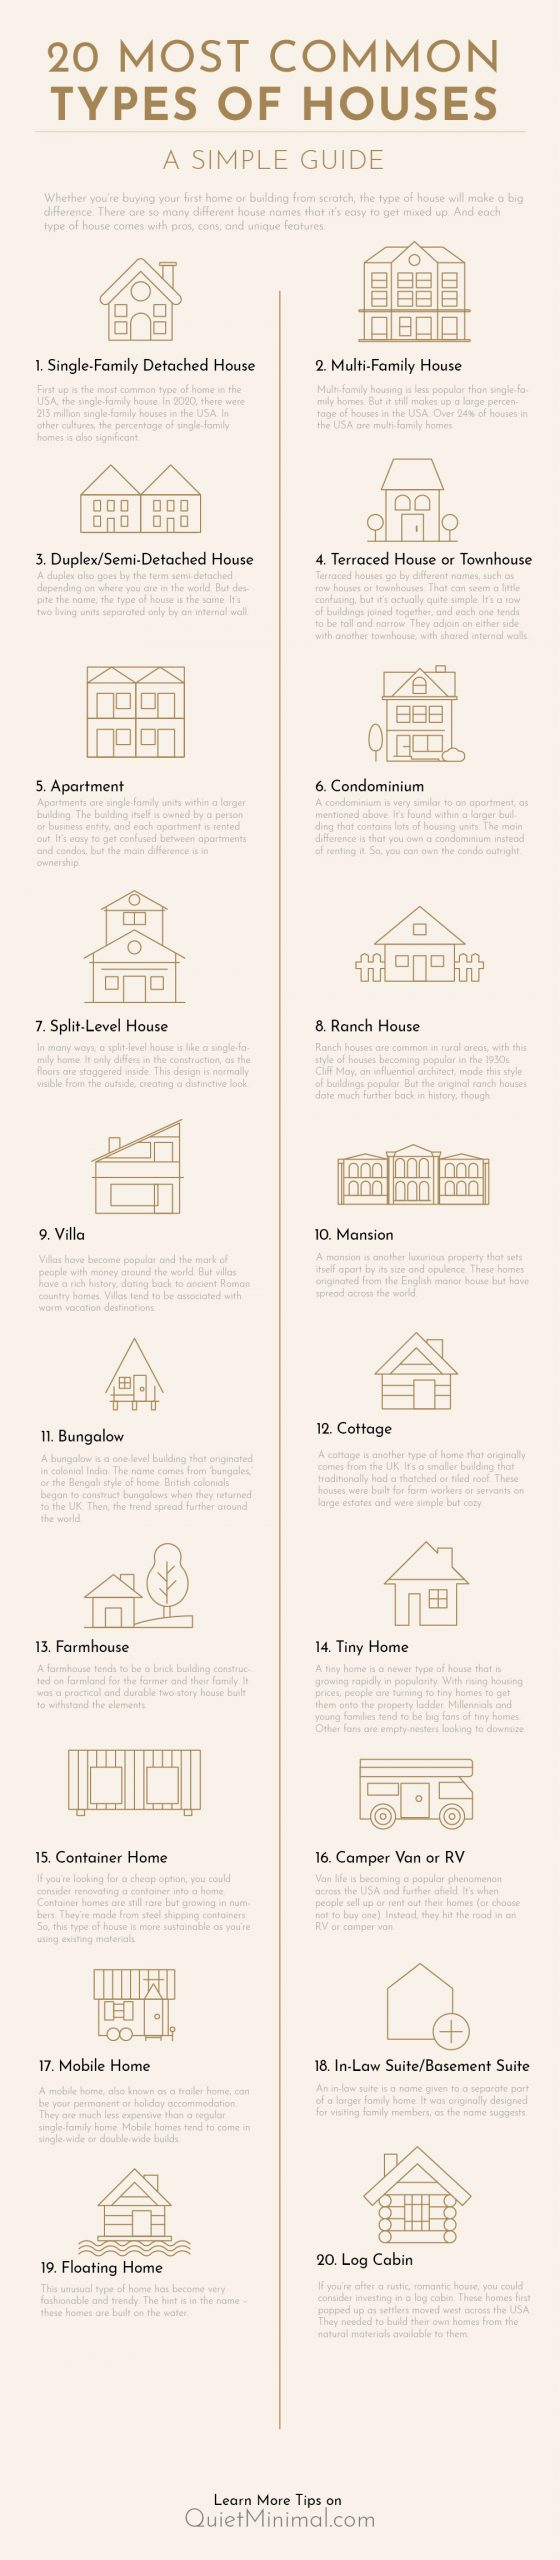 The most  common types of houses in America (Infographic)